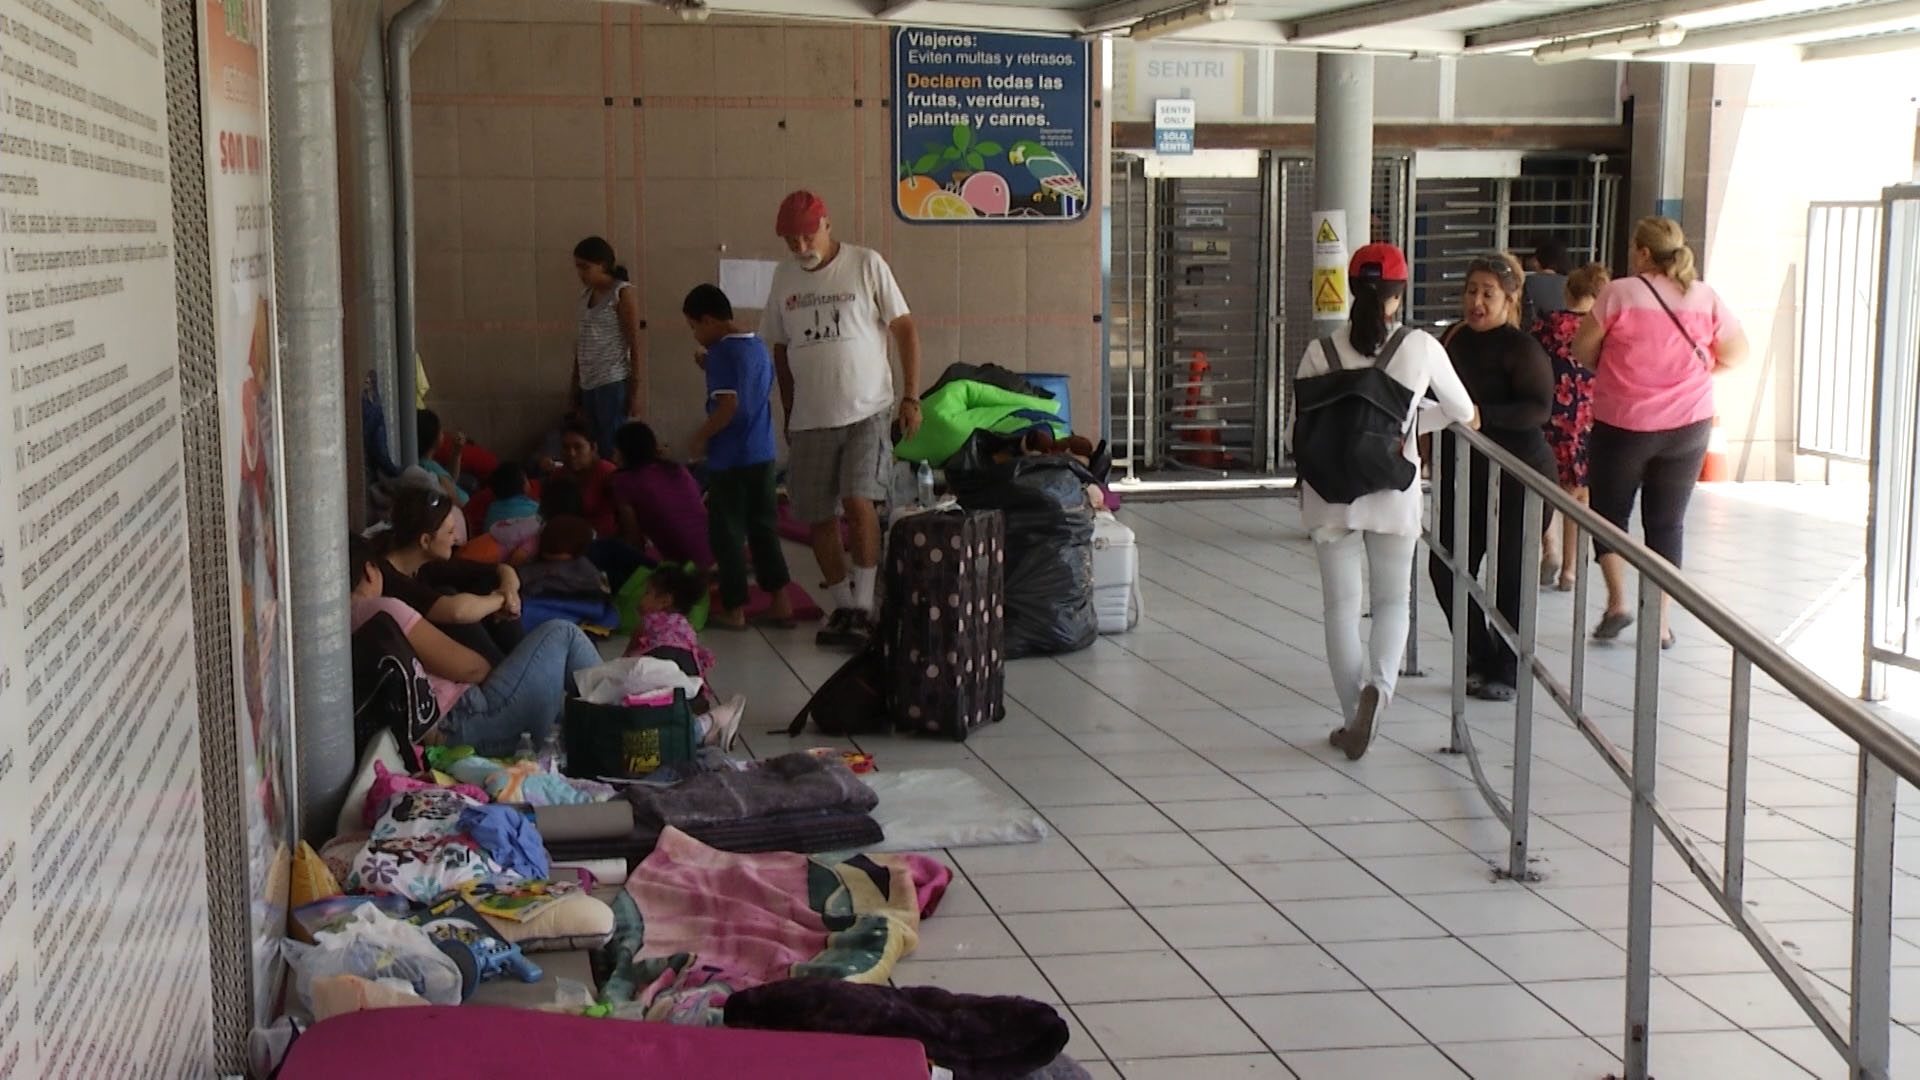 Families seeking asylum wait at the port of entry in Nogales, Sonora in June 2018.